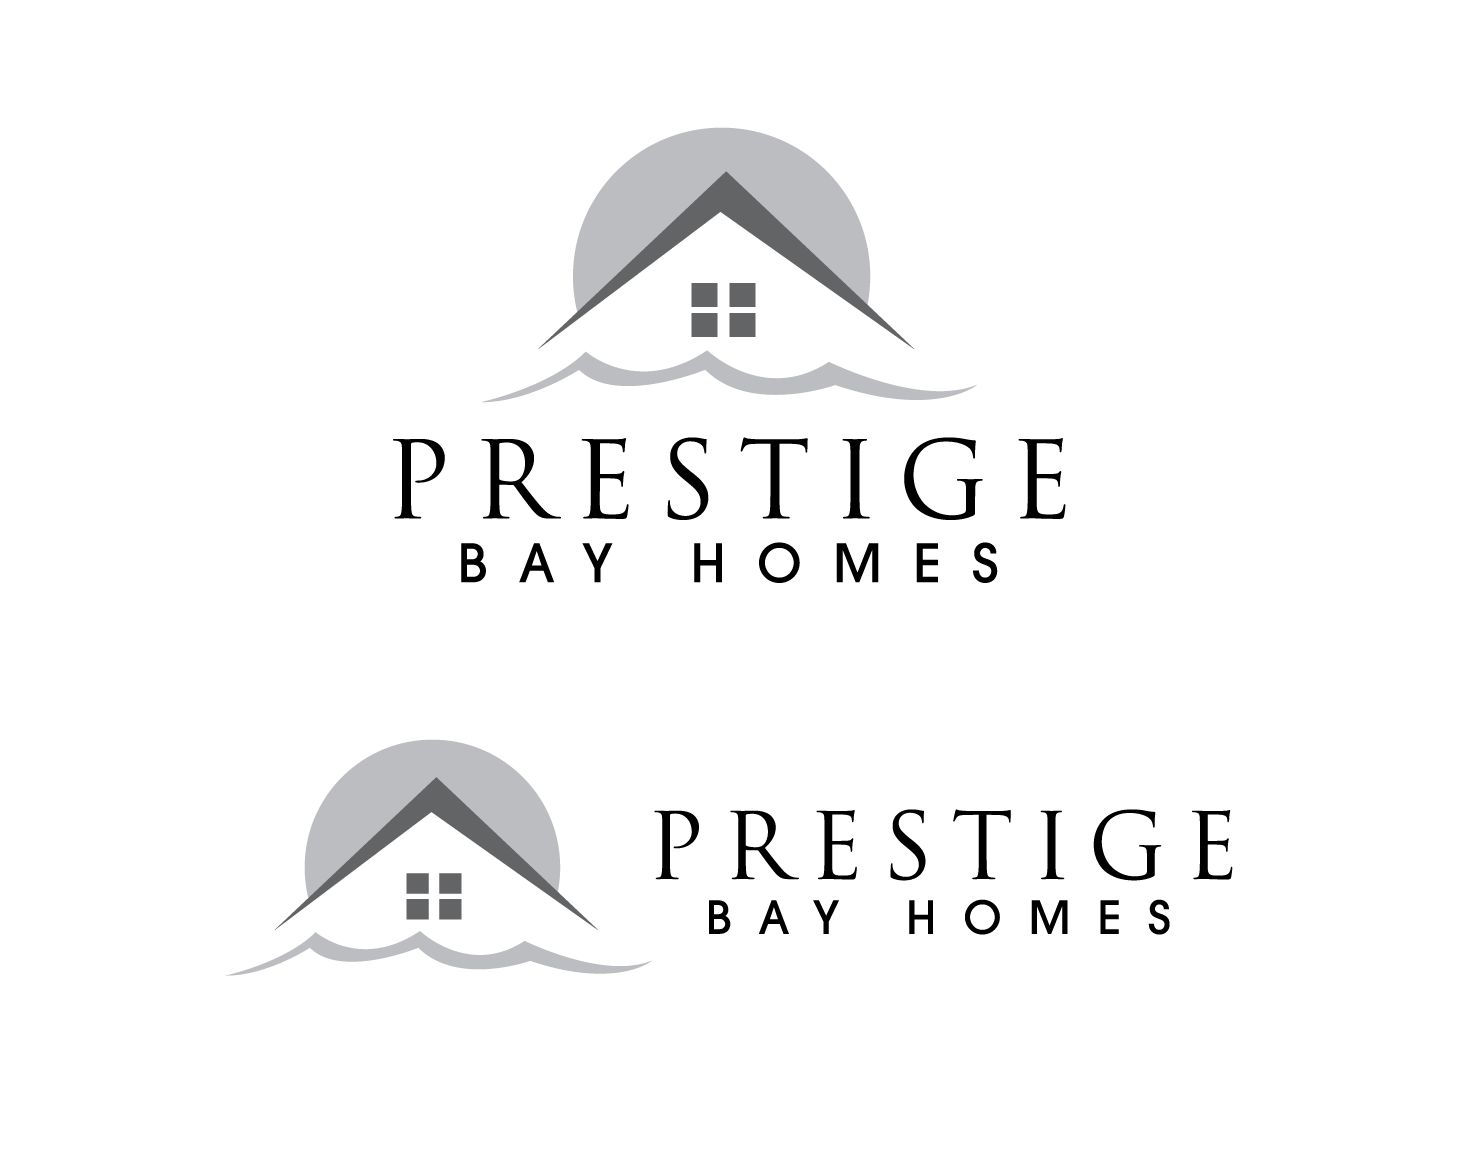 Logo Design by rA - Entry No. 100 in the Logo Design Contest Imaginative Logo Design for Prestige Bay Homes.